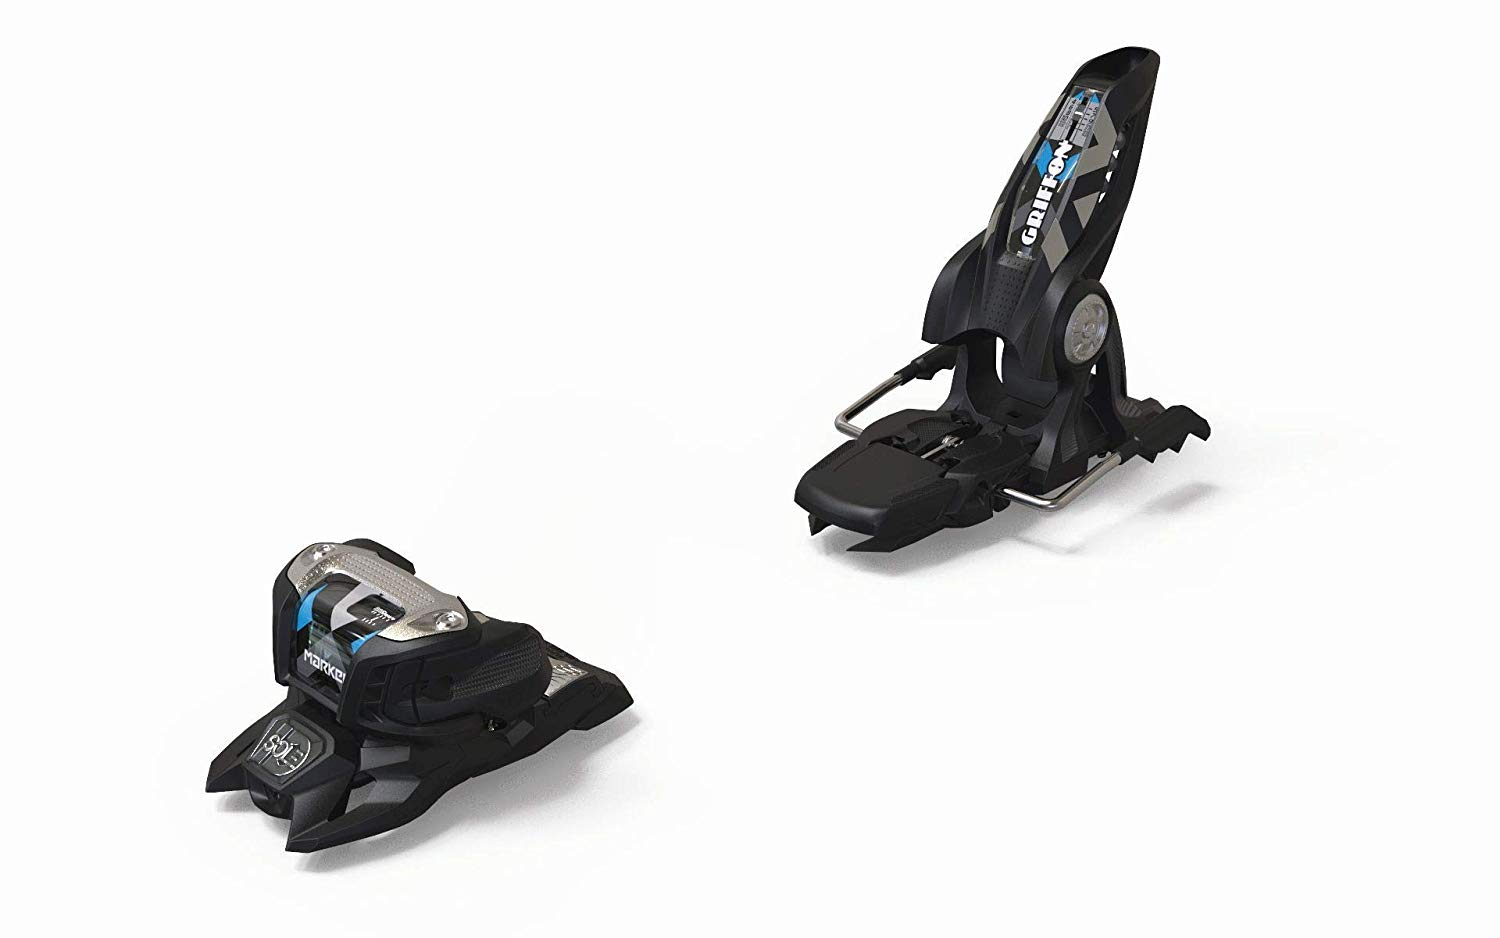 Top 10 Best Ski Bindings Reviews For All Mountains 2021 4